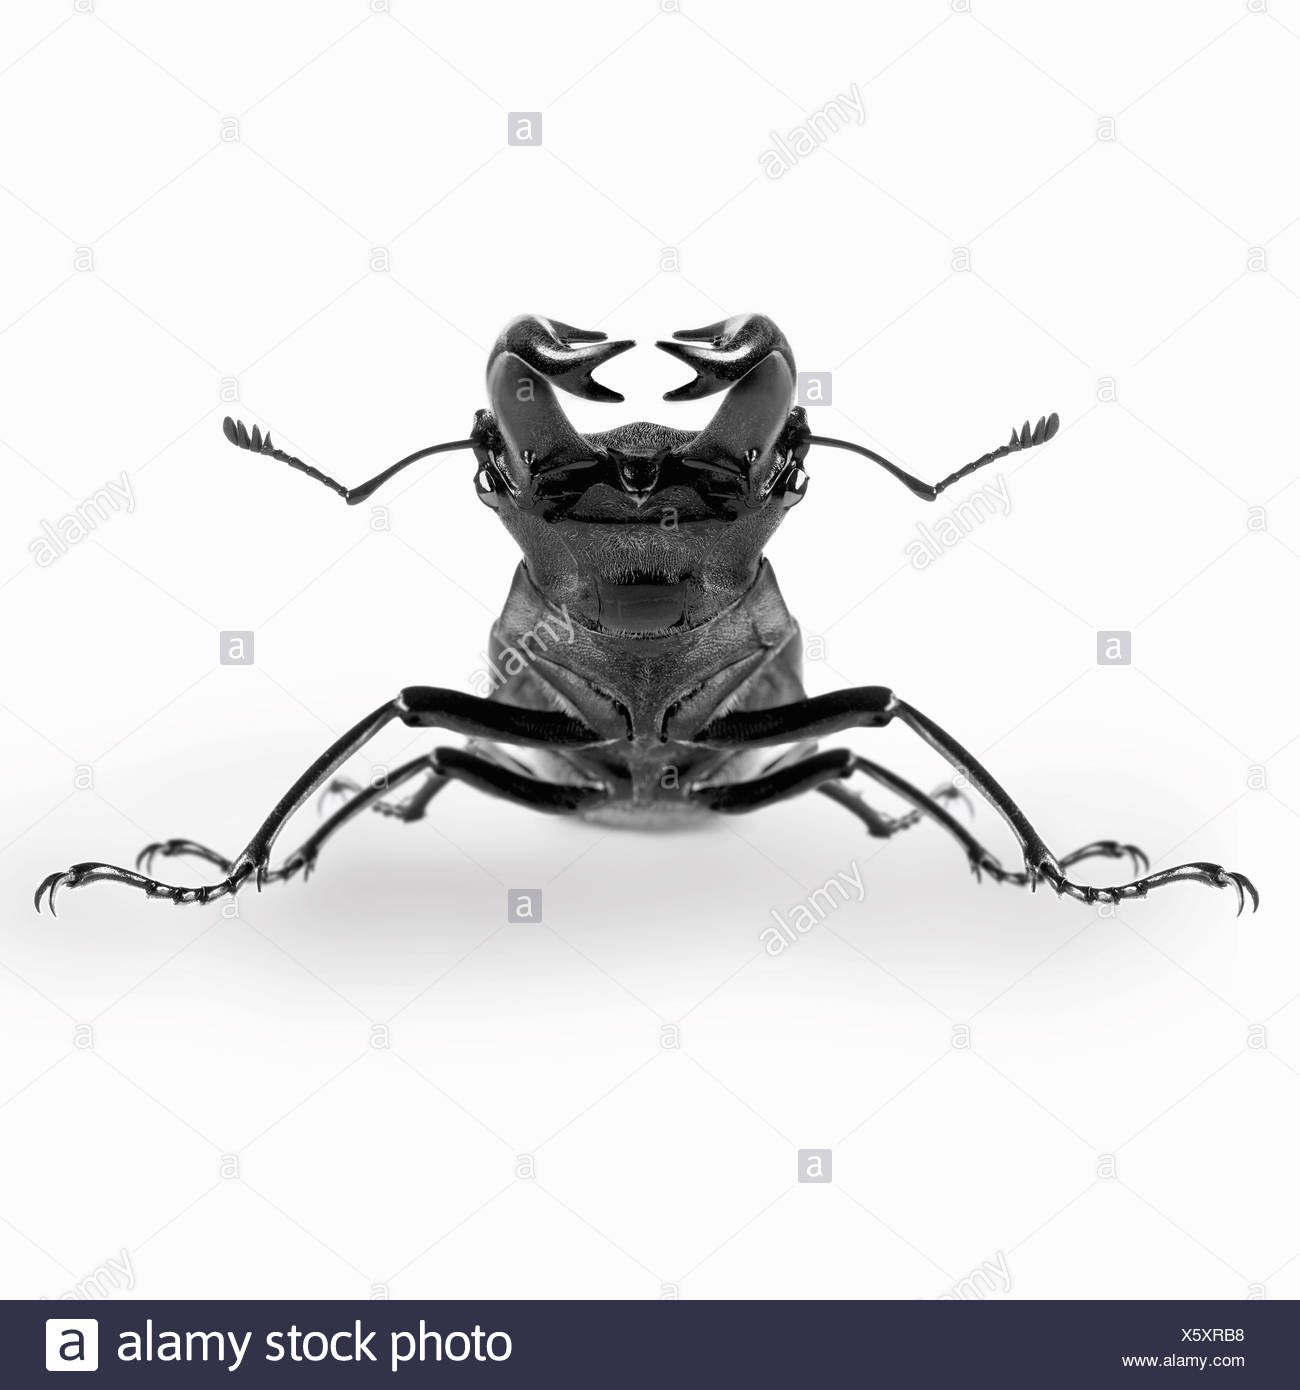 Close up of stag beetle - Stock Image